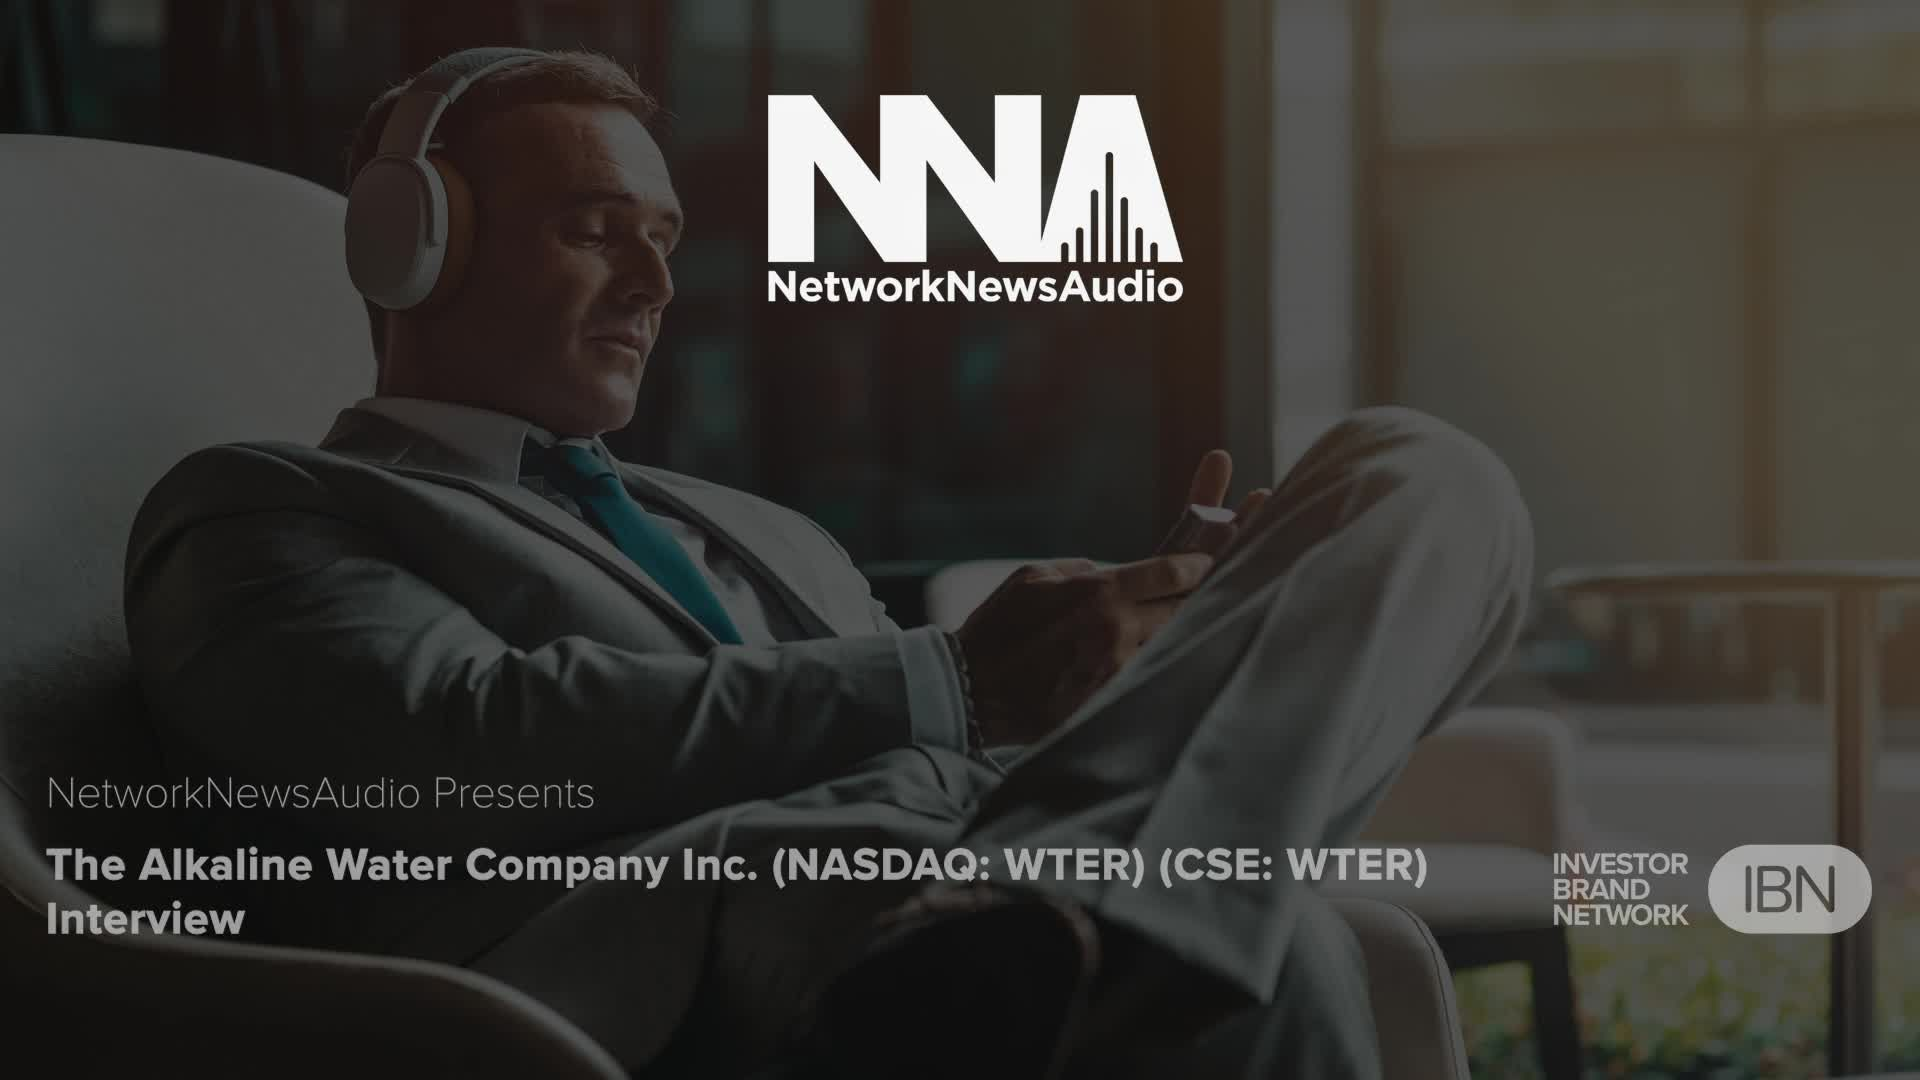 InvestorBrandNetwork-NetworkNewsAudio Interviews-The Alkaline Water Company Inc. (CSE: WTER) (NASDAQ: WTER) Interview